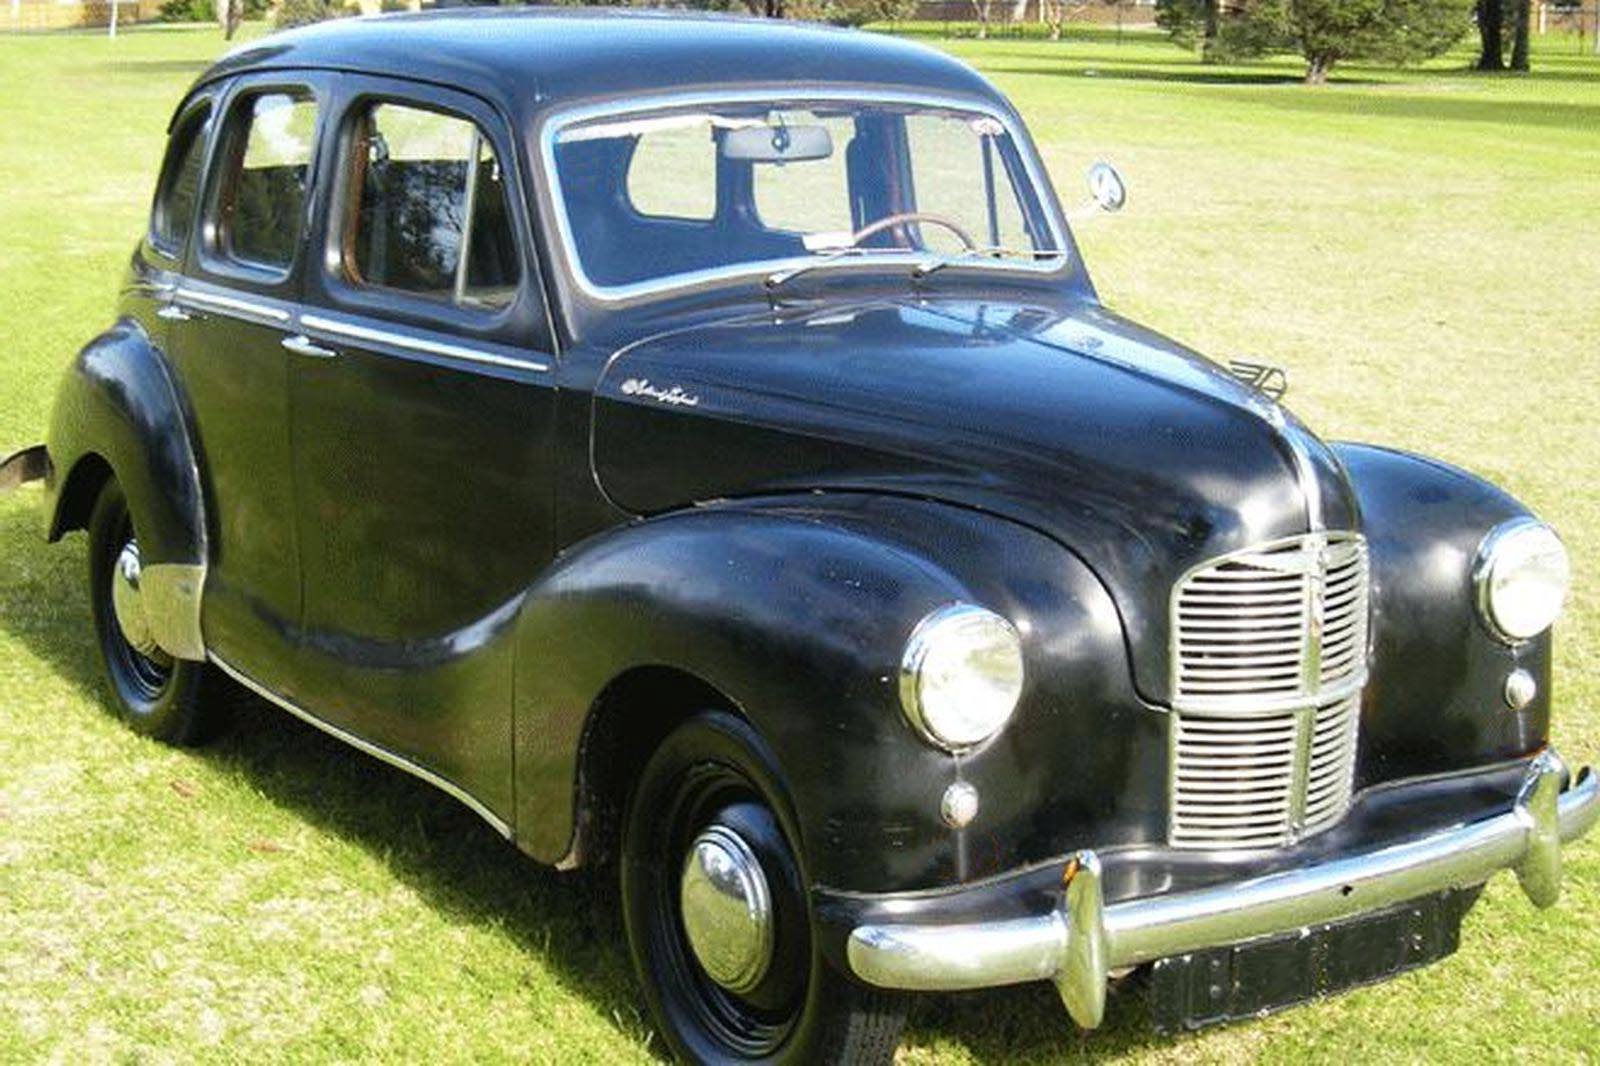 Discover Genealogy: My First Car